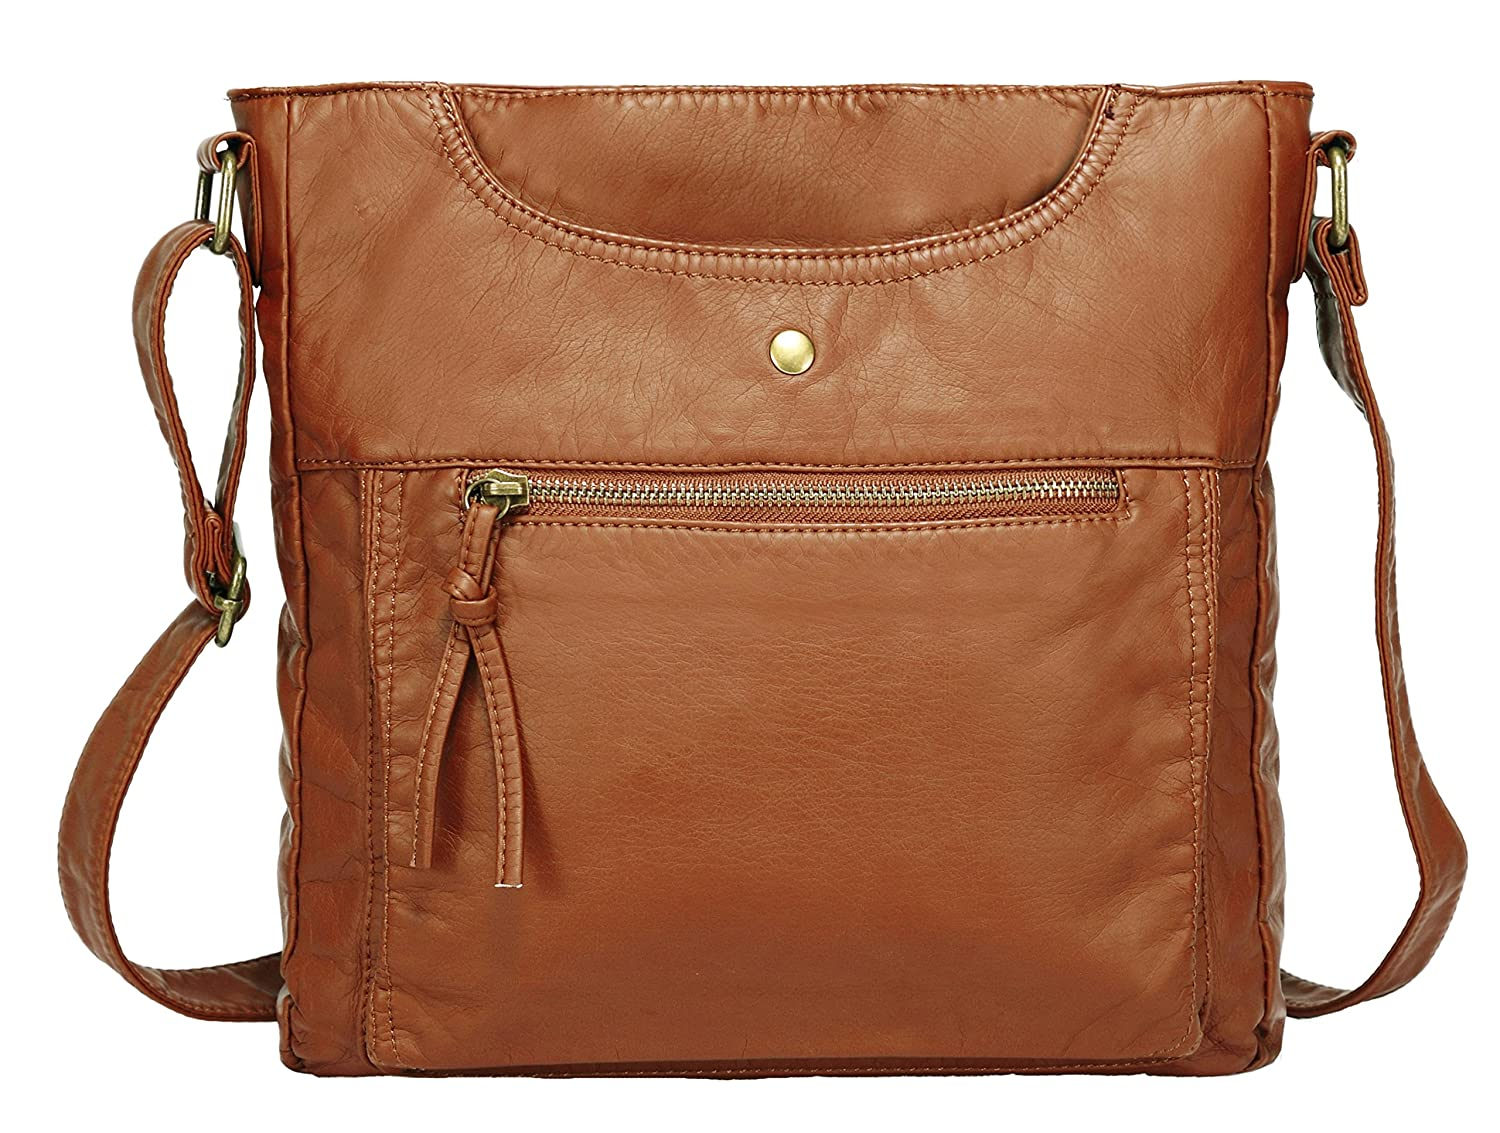 Suvelle Lightweight Go-Anywhere Travel Everyday Crossbody Bag Multi Pocket  Shoulder Handbag 20103 SUVELLÉ 20103BK 6e098b017fe3c